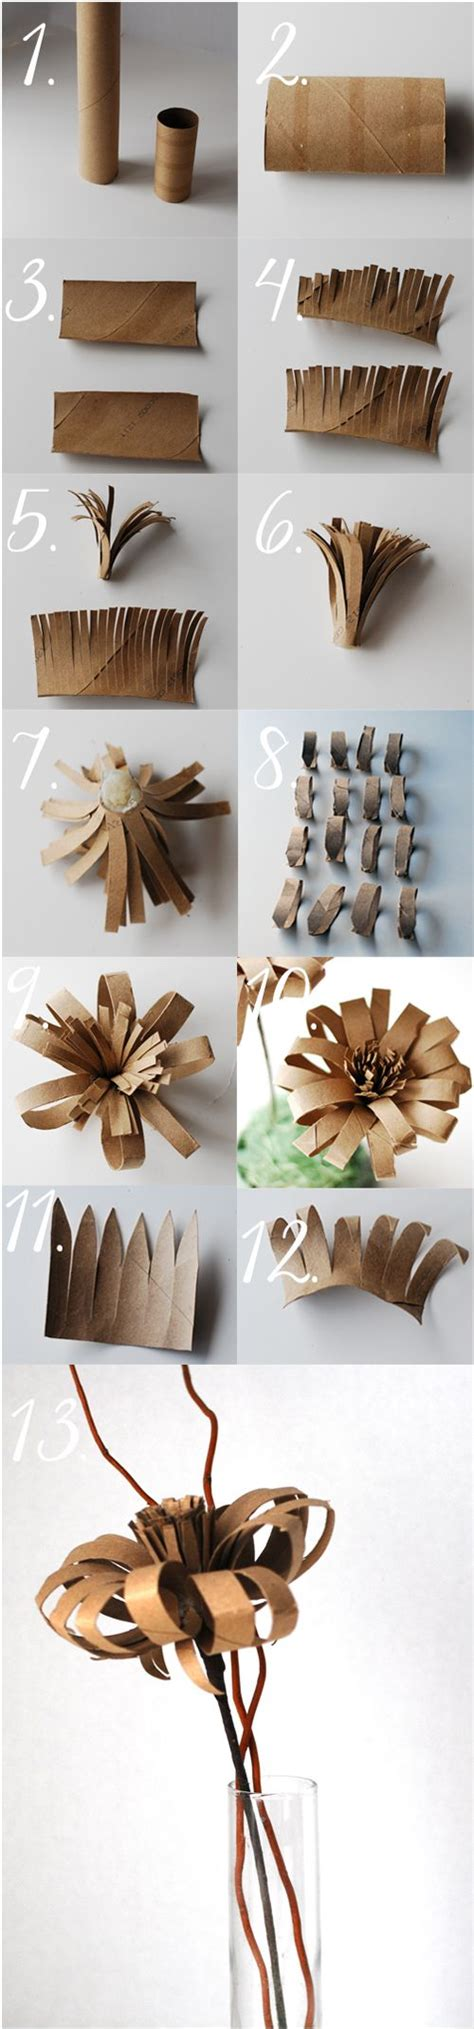 Crafts You Can Make With Toilet Paper Rolls - easy paper craft projects you can make with paper